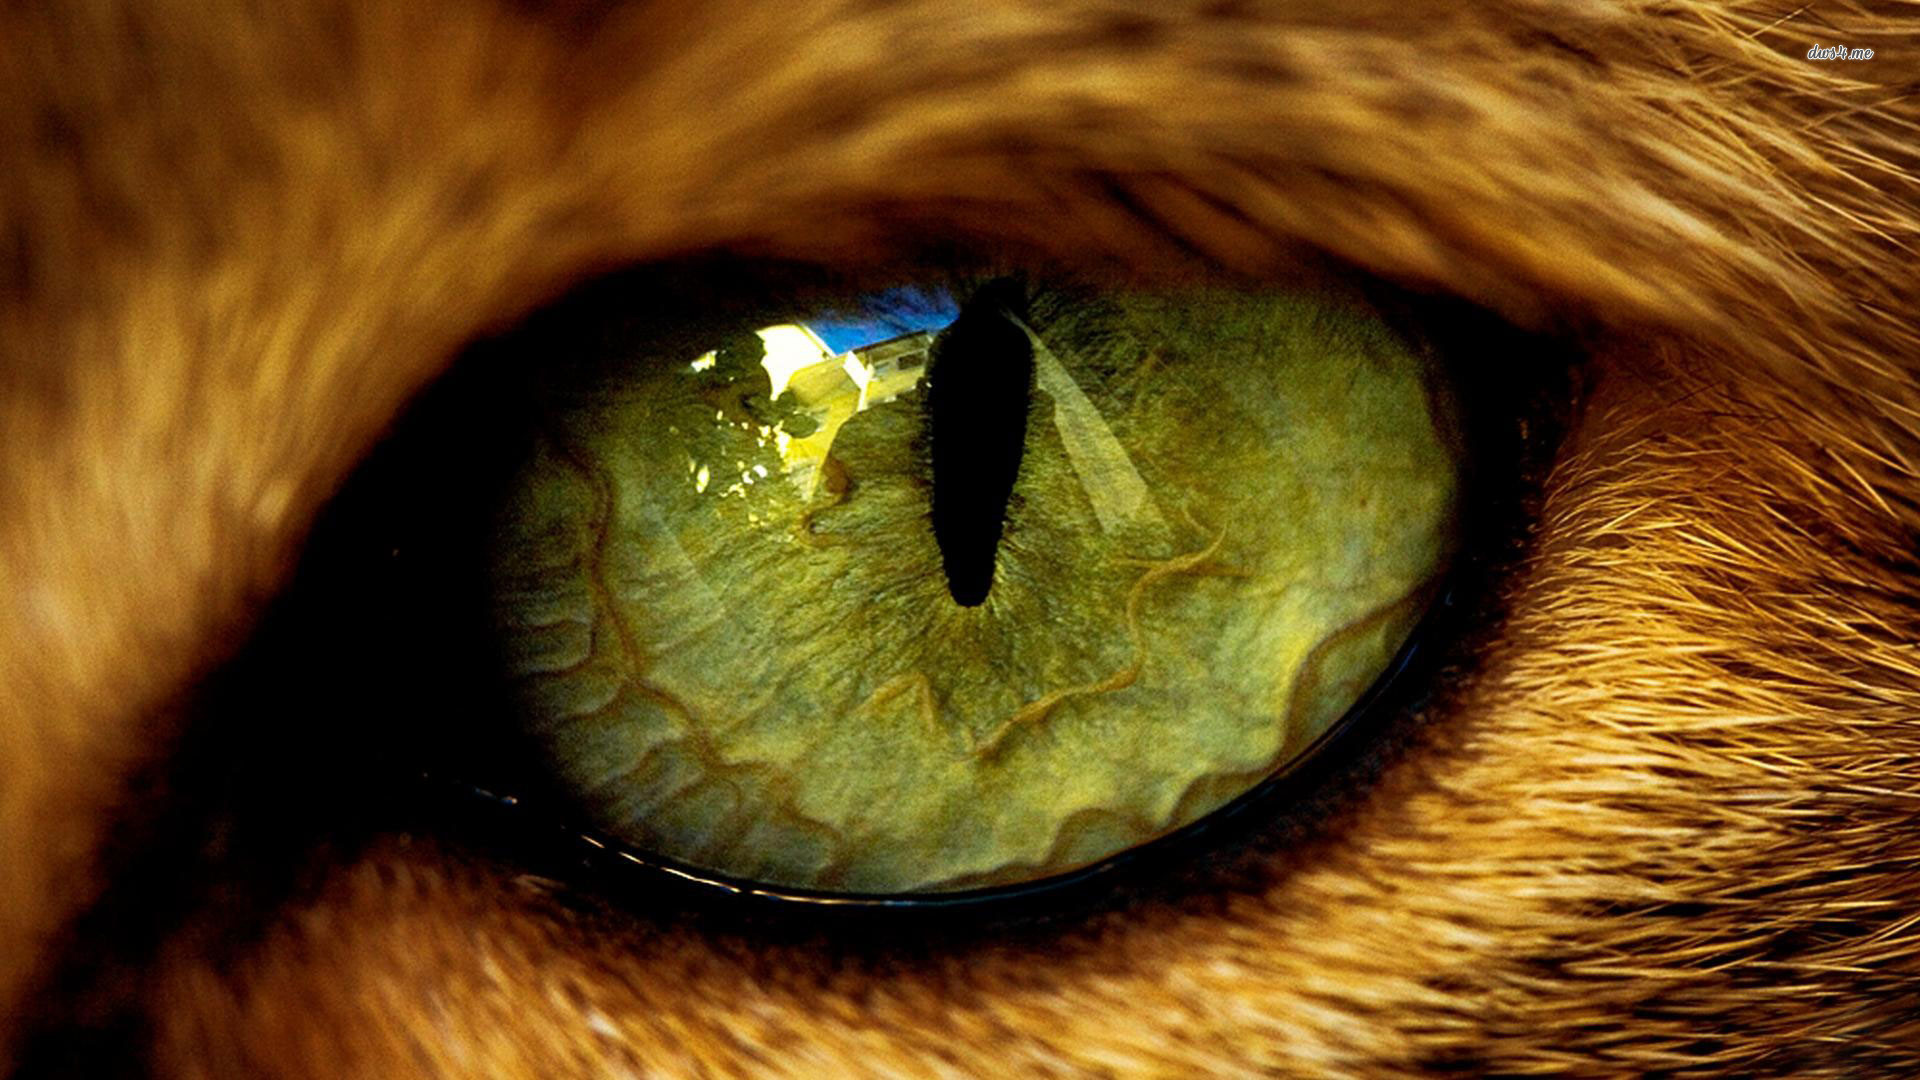 Res: 1920x1080, eye cat the beast animals wool pupil reflection HD wallpaper